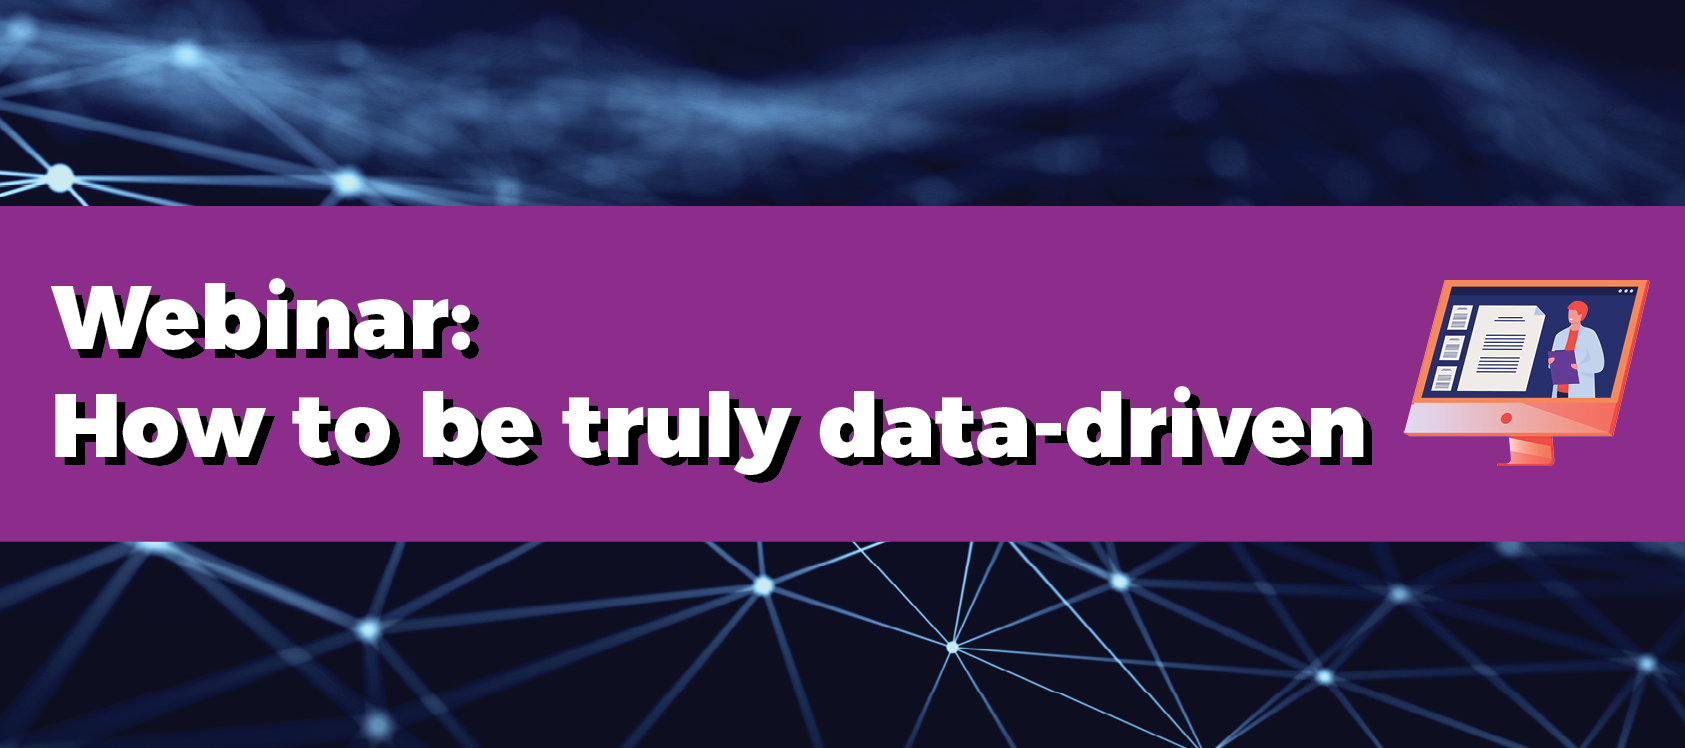 Upcoming webinar: How to become truly data-driven